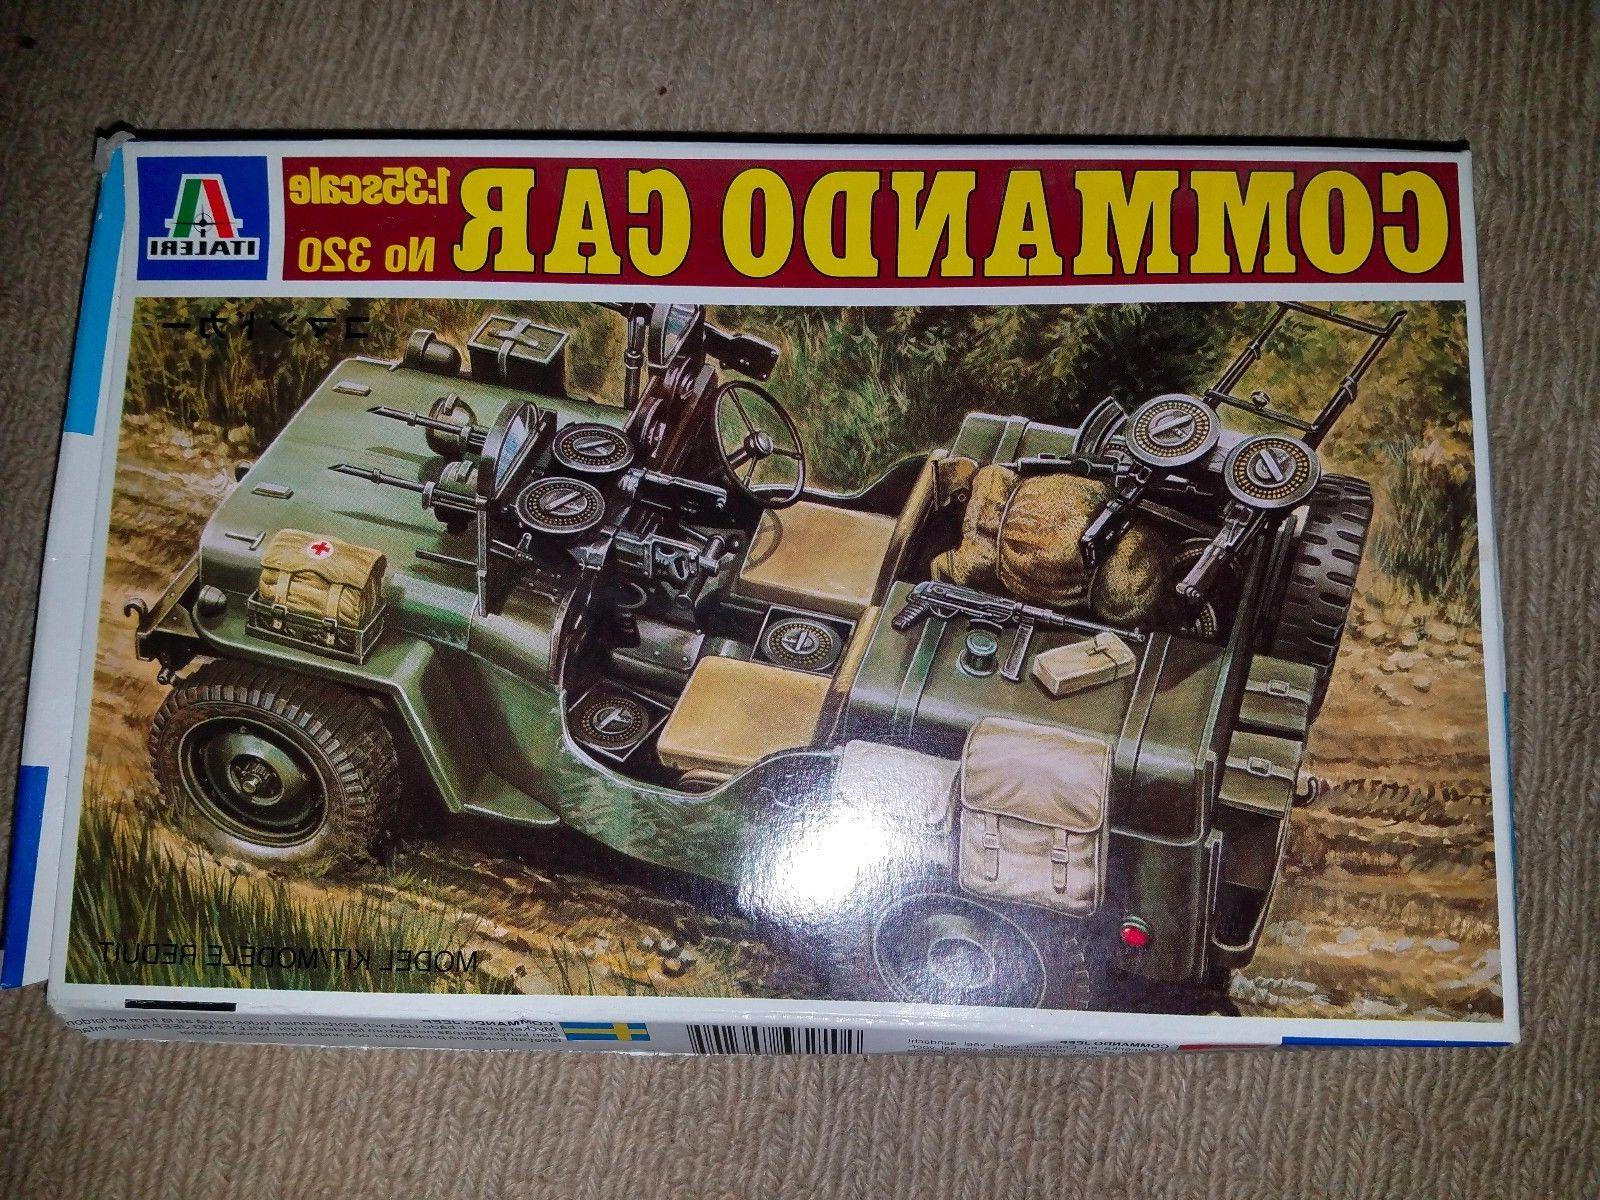 Italeri Commando Car Plastic Model Kit No. 320 1:35 Scale